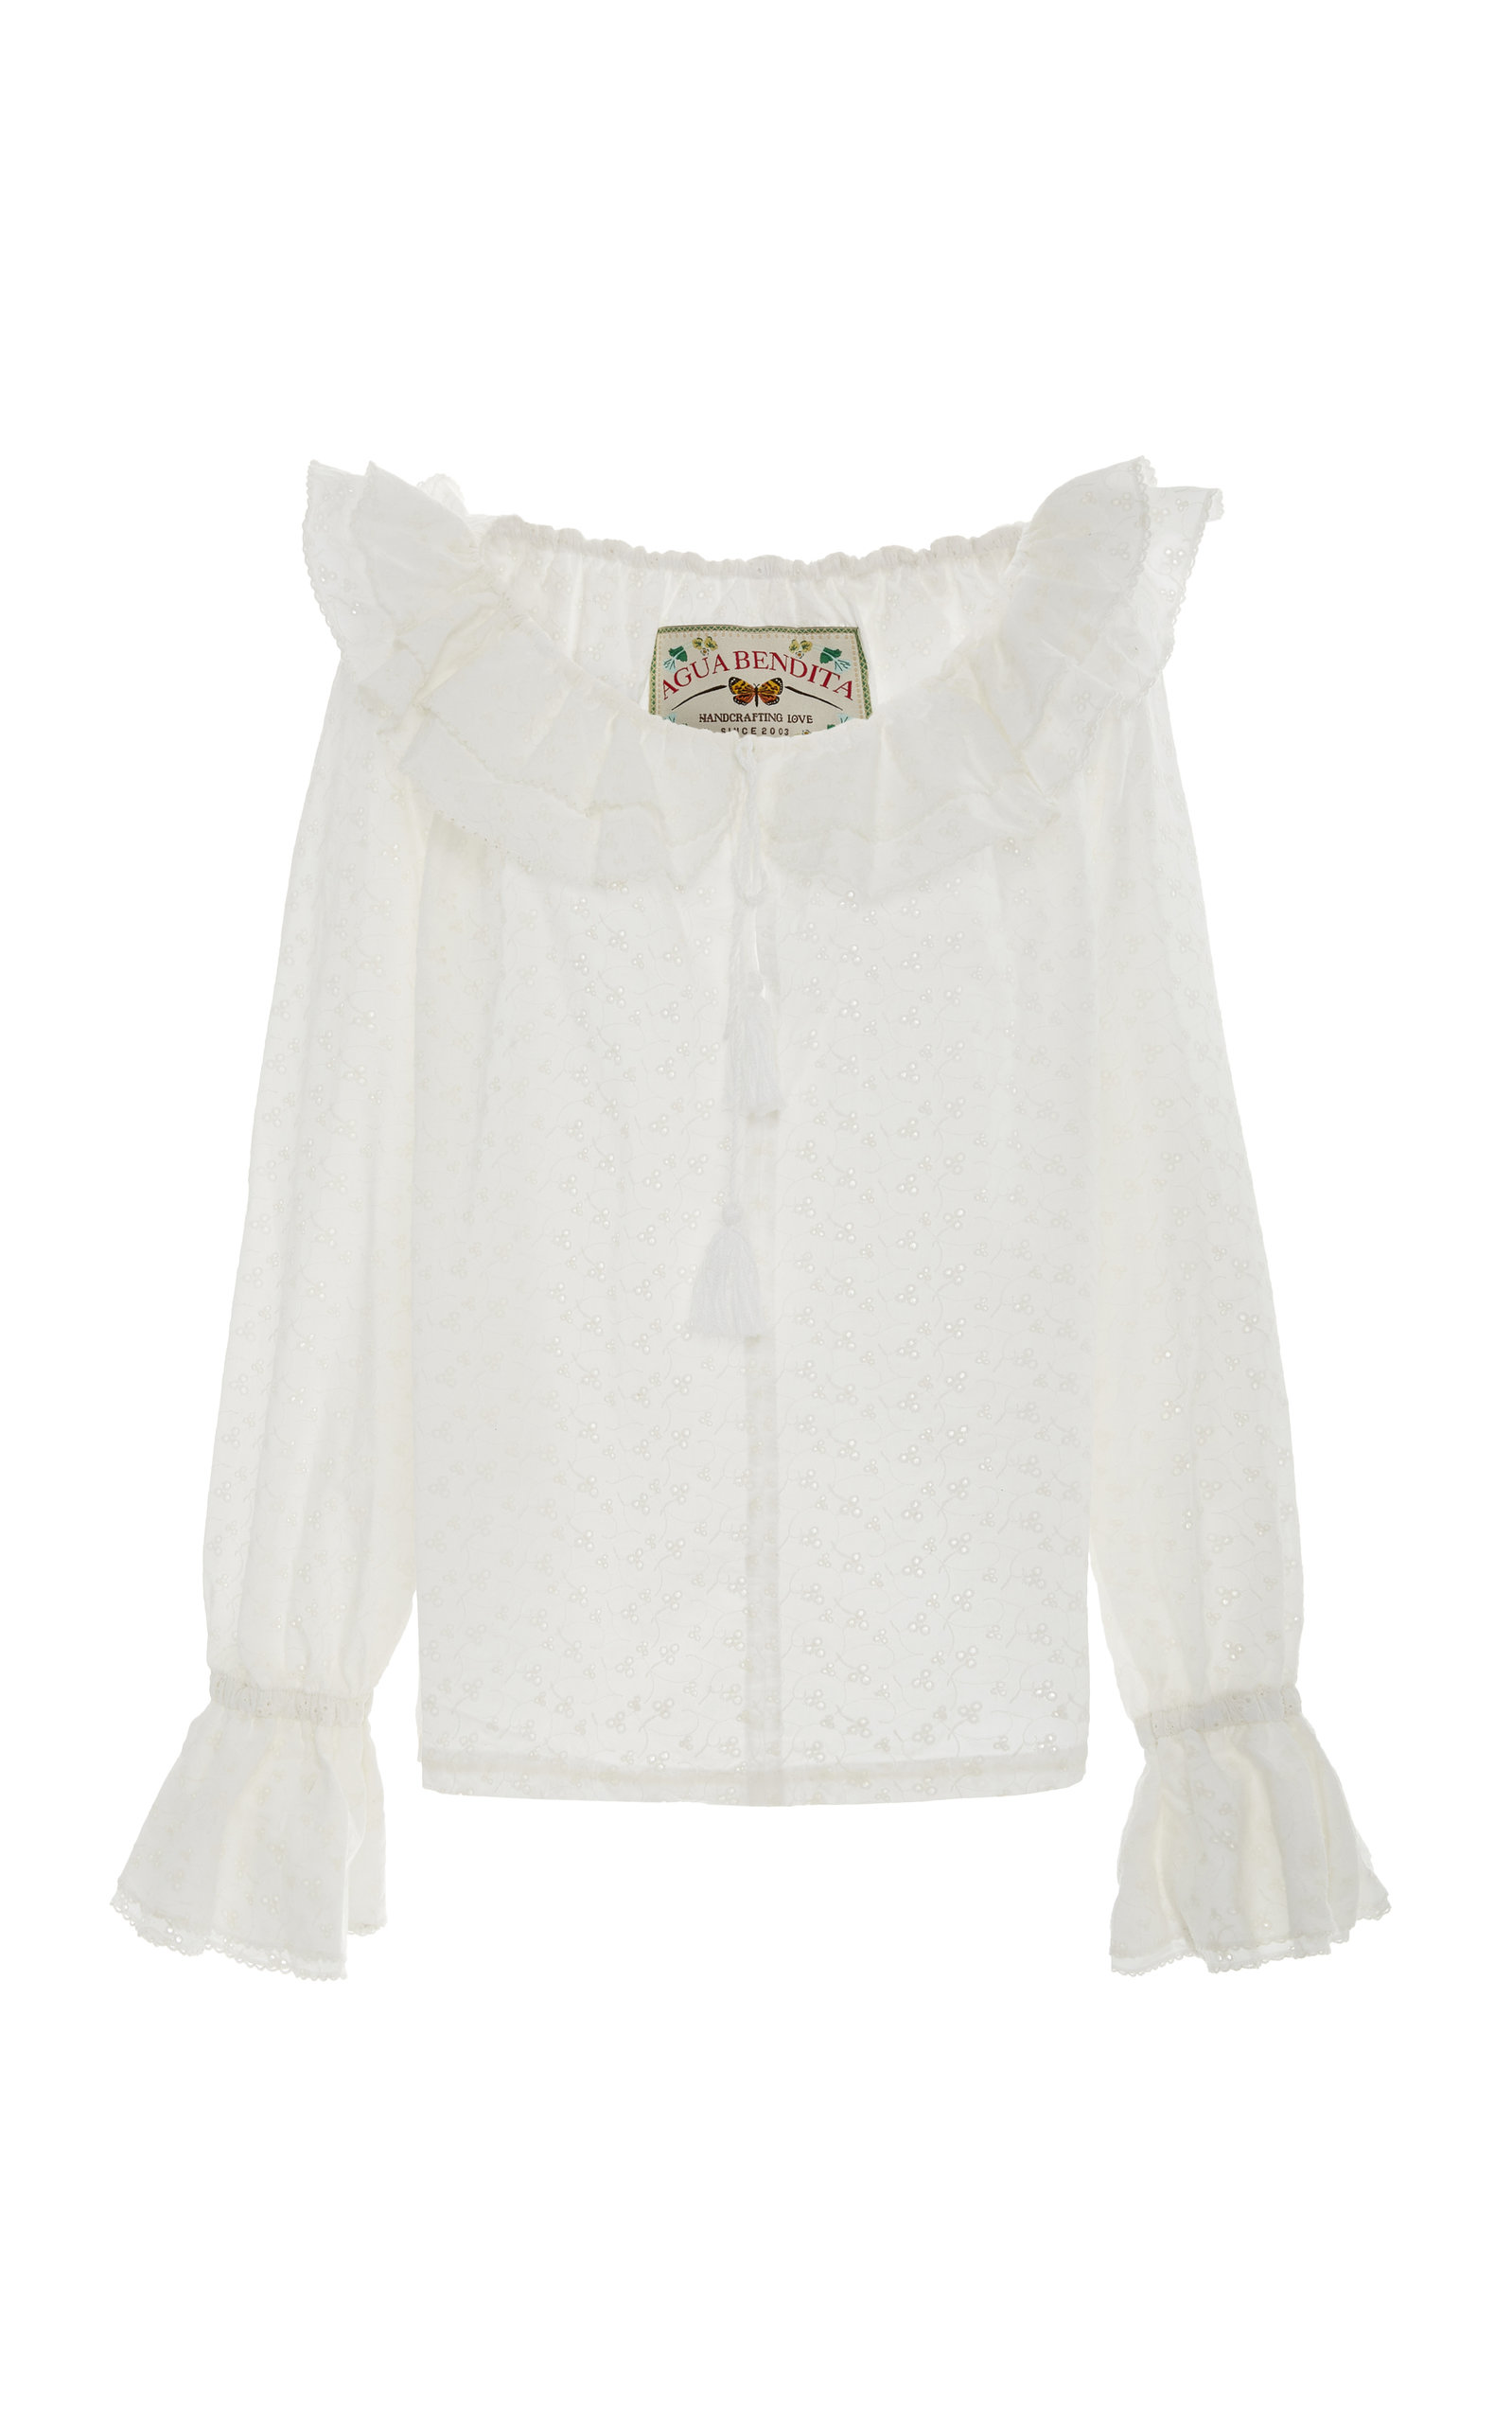 AGUA BY AGUA BENDITA Mutis Broderie Cotton Shirt in White